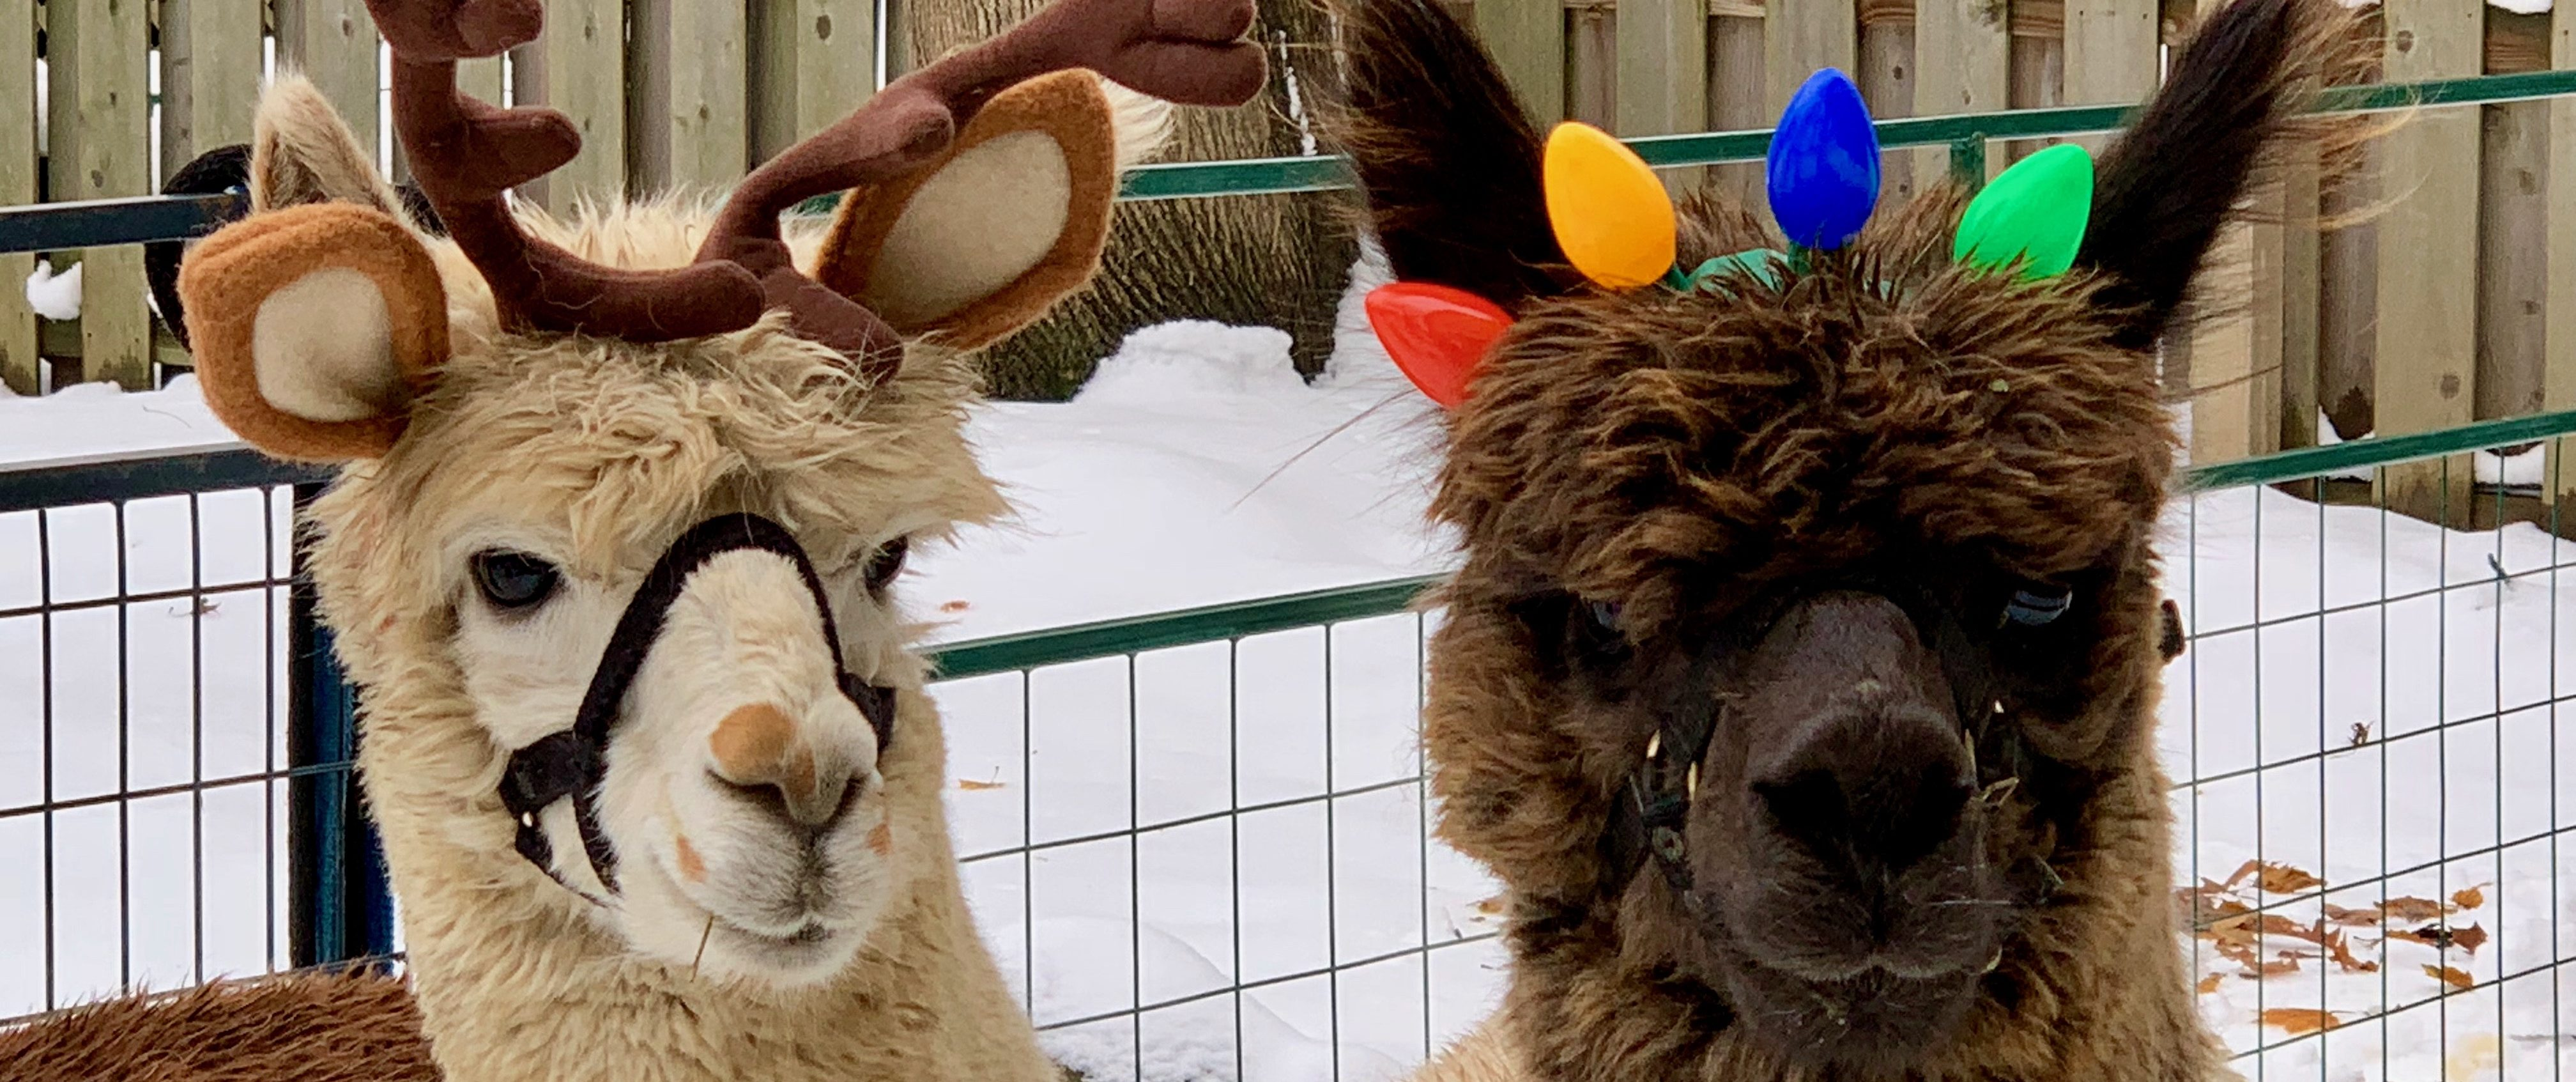 Elbert and Anakin show off their festive headbands at the Roycroft Campus Holiday Show.